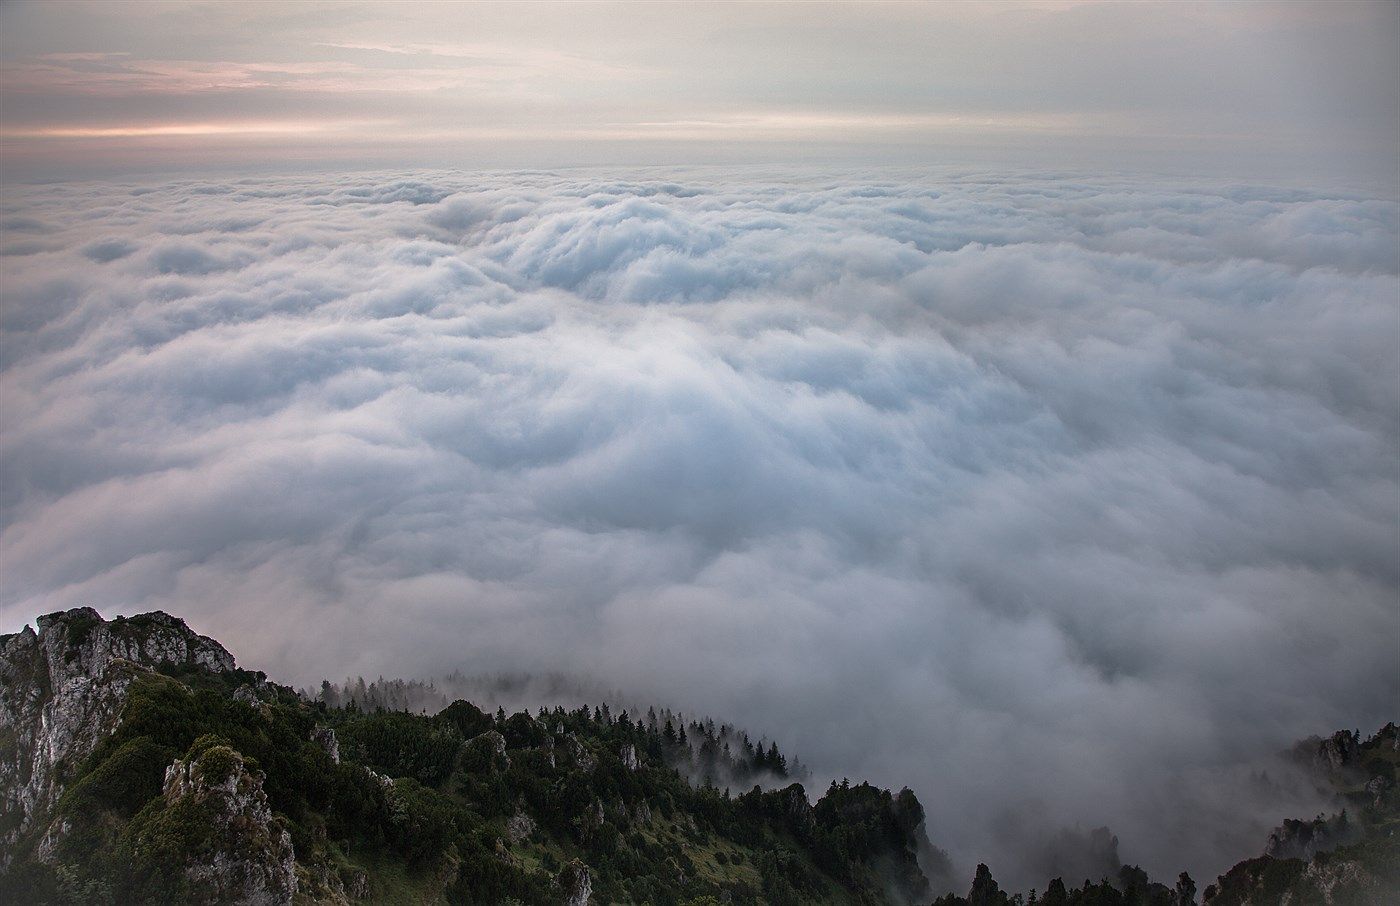 Sea of Clouds, photo